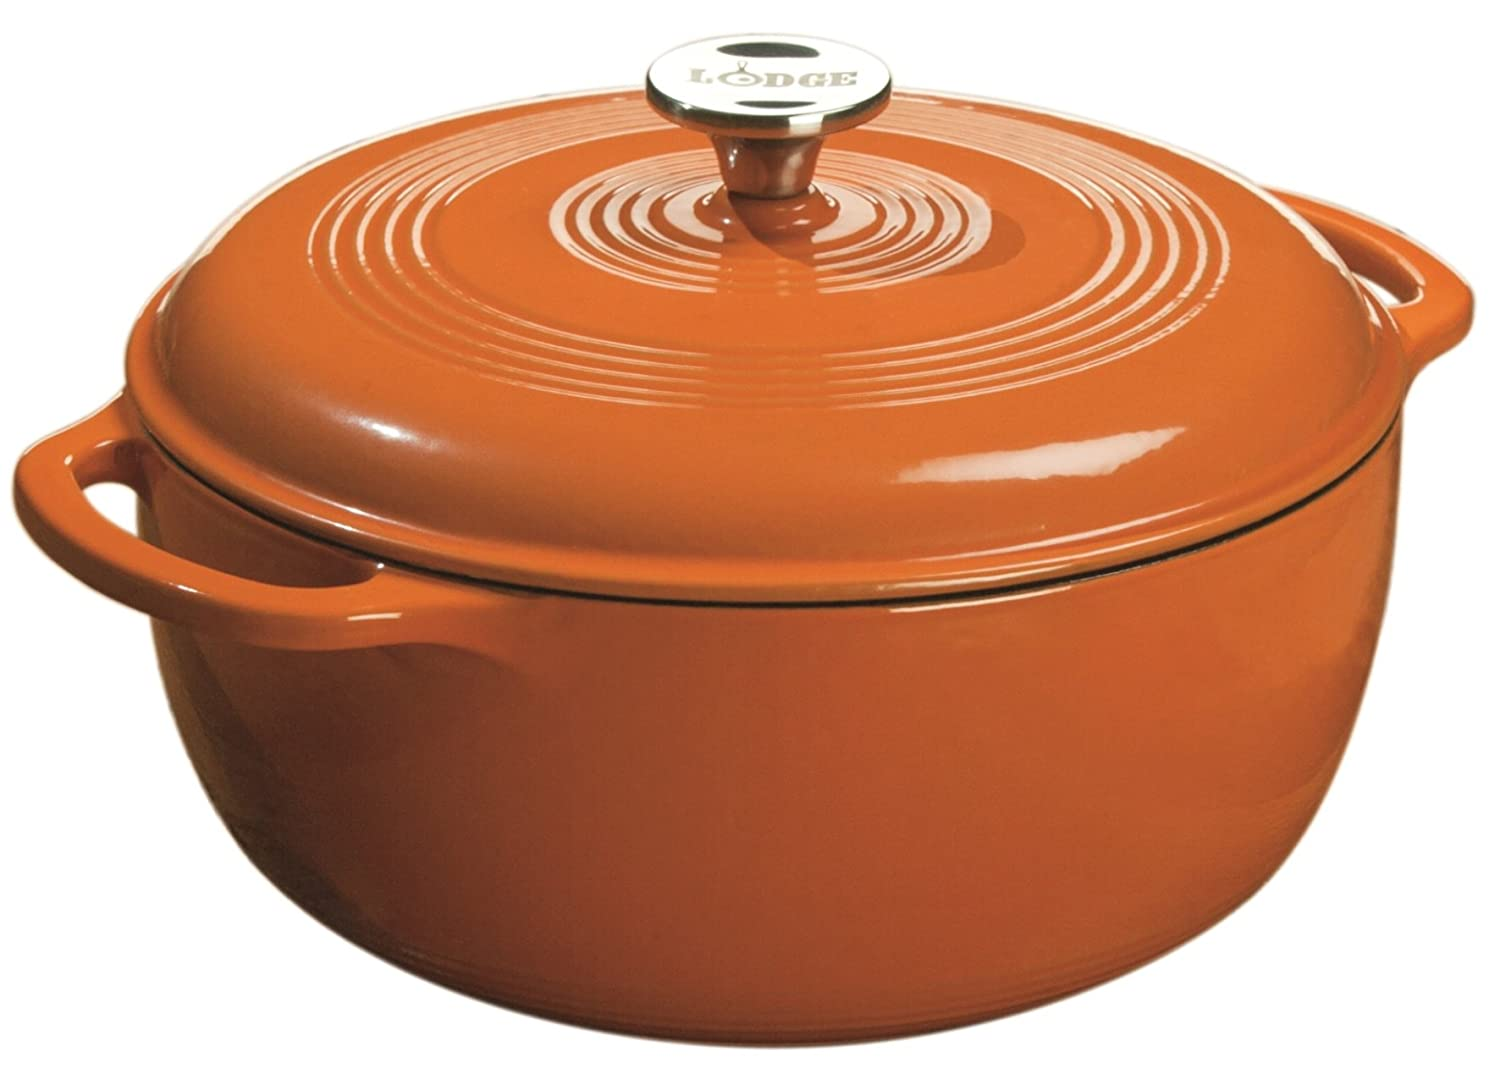 Lodge Color EC6D63 Enameled Cast Iron Dutch Oven, Pumpkin, 6-Quart